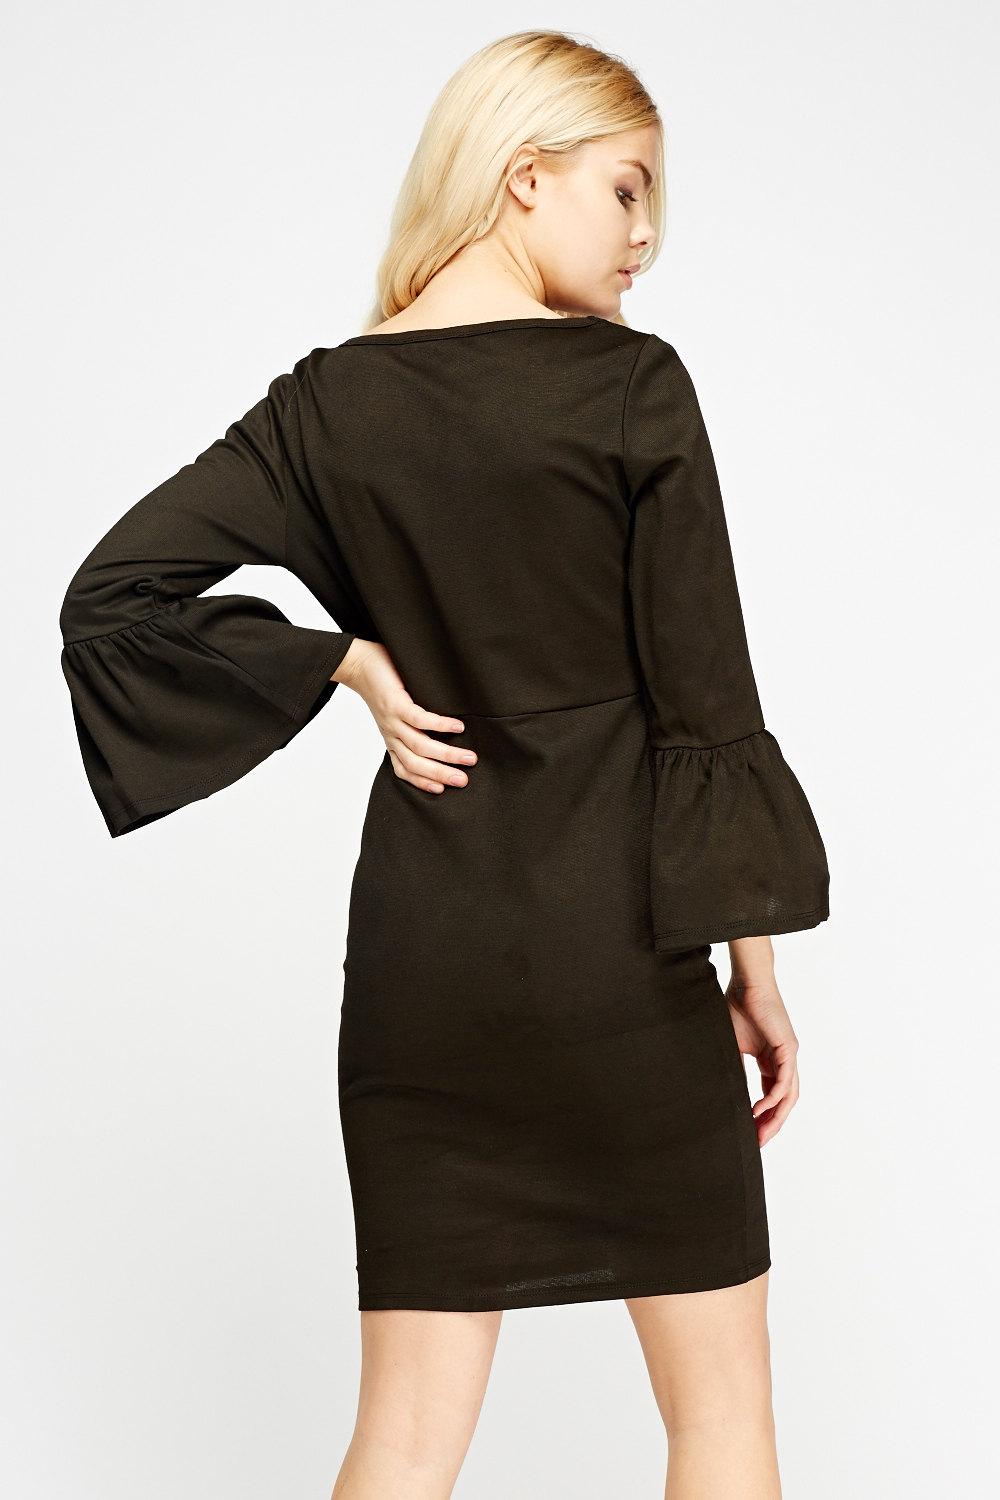 35f72c56f872 Flared Sleeve Coffee Dress - Just £5